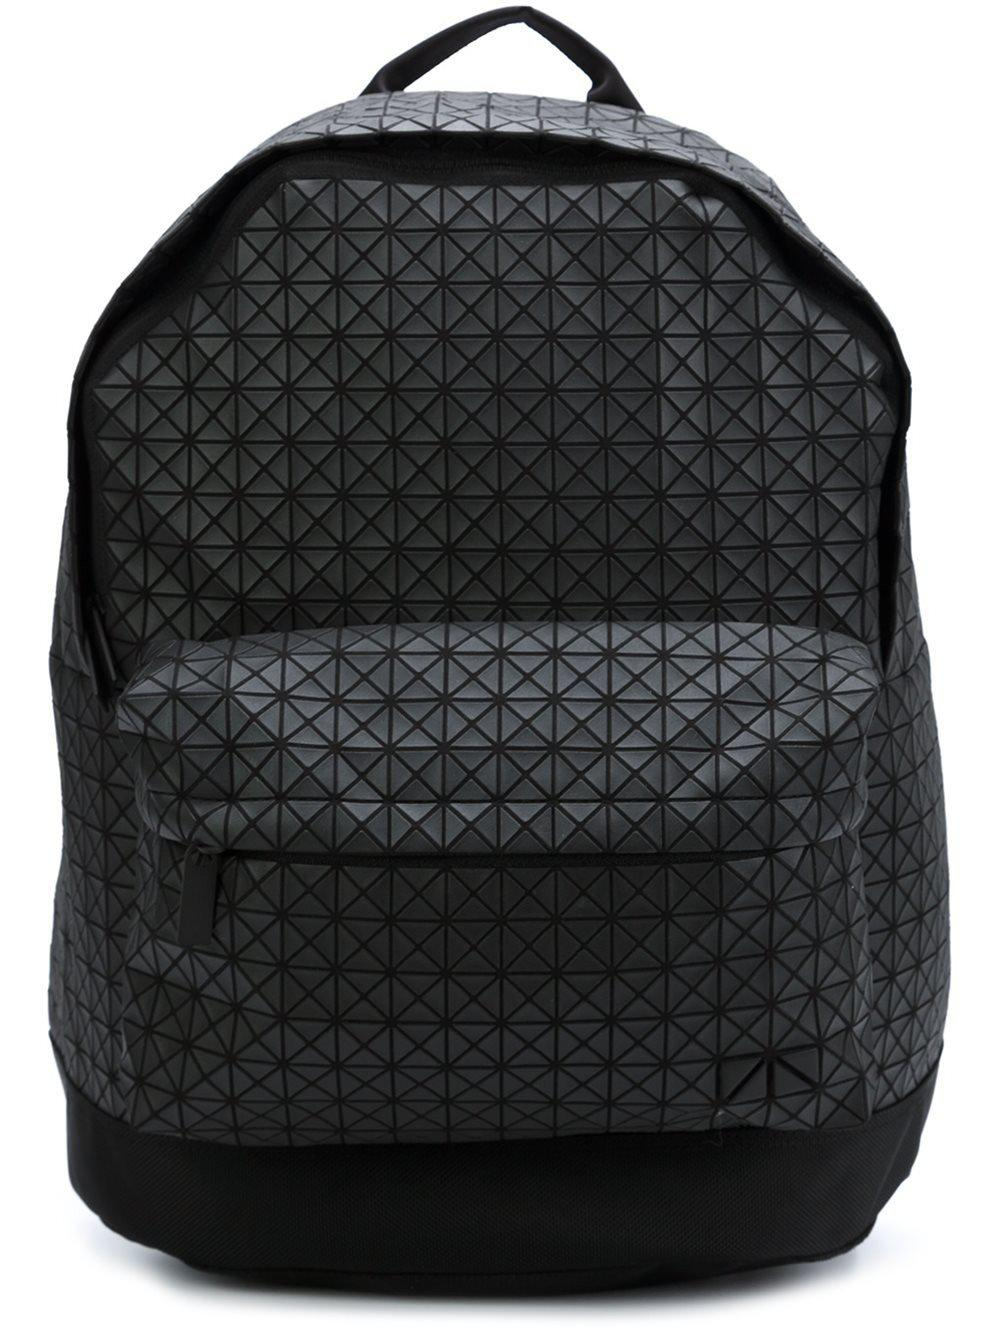 a8569a5d65f Lyst - Bao Bao Issey Miyake Geometric Panelled Backpack in Black for Men